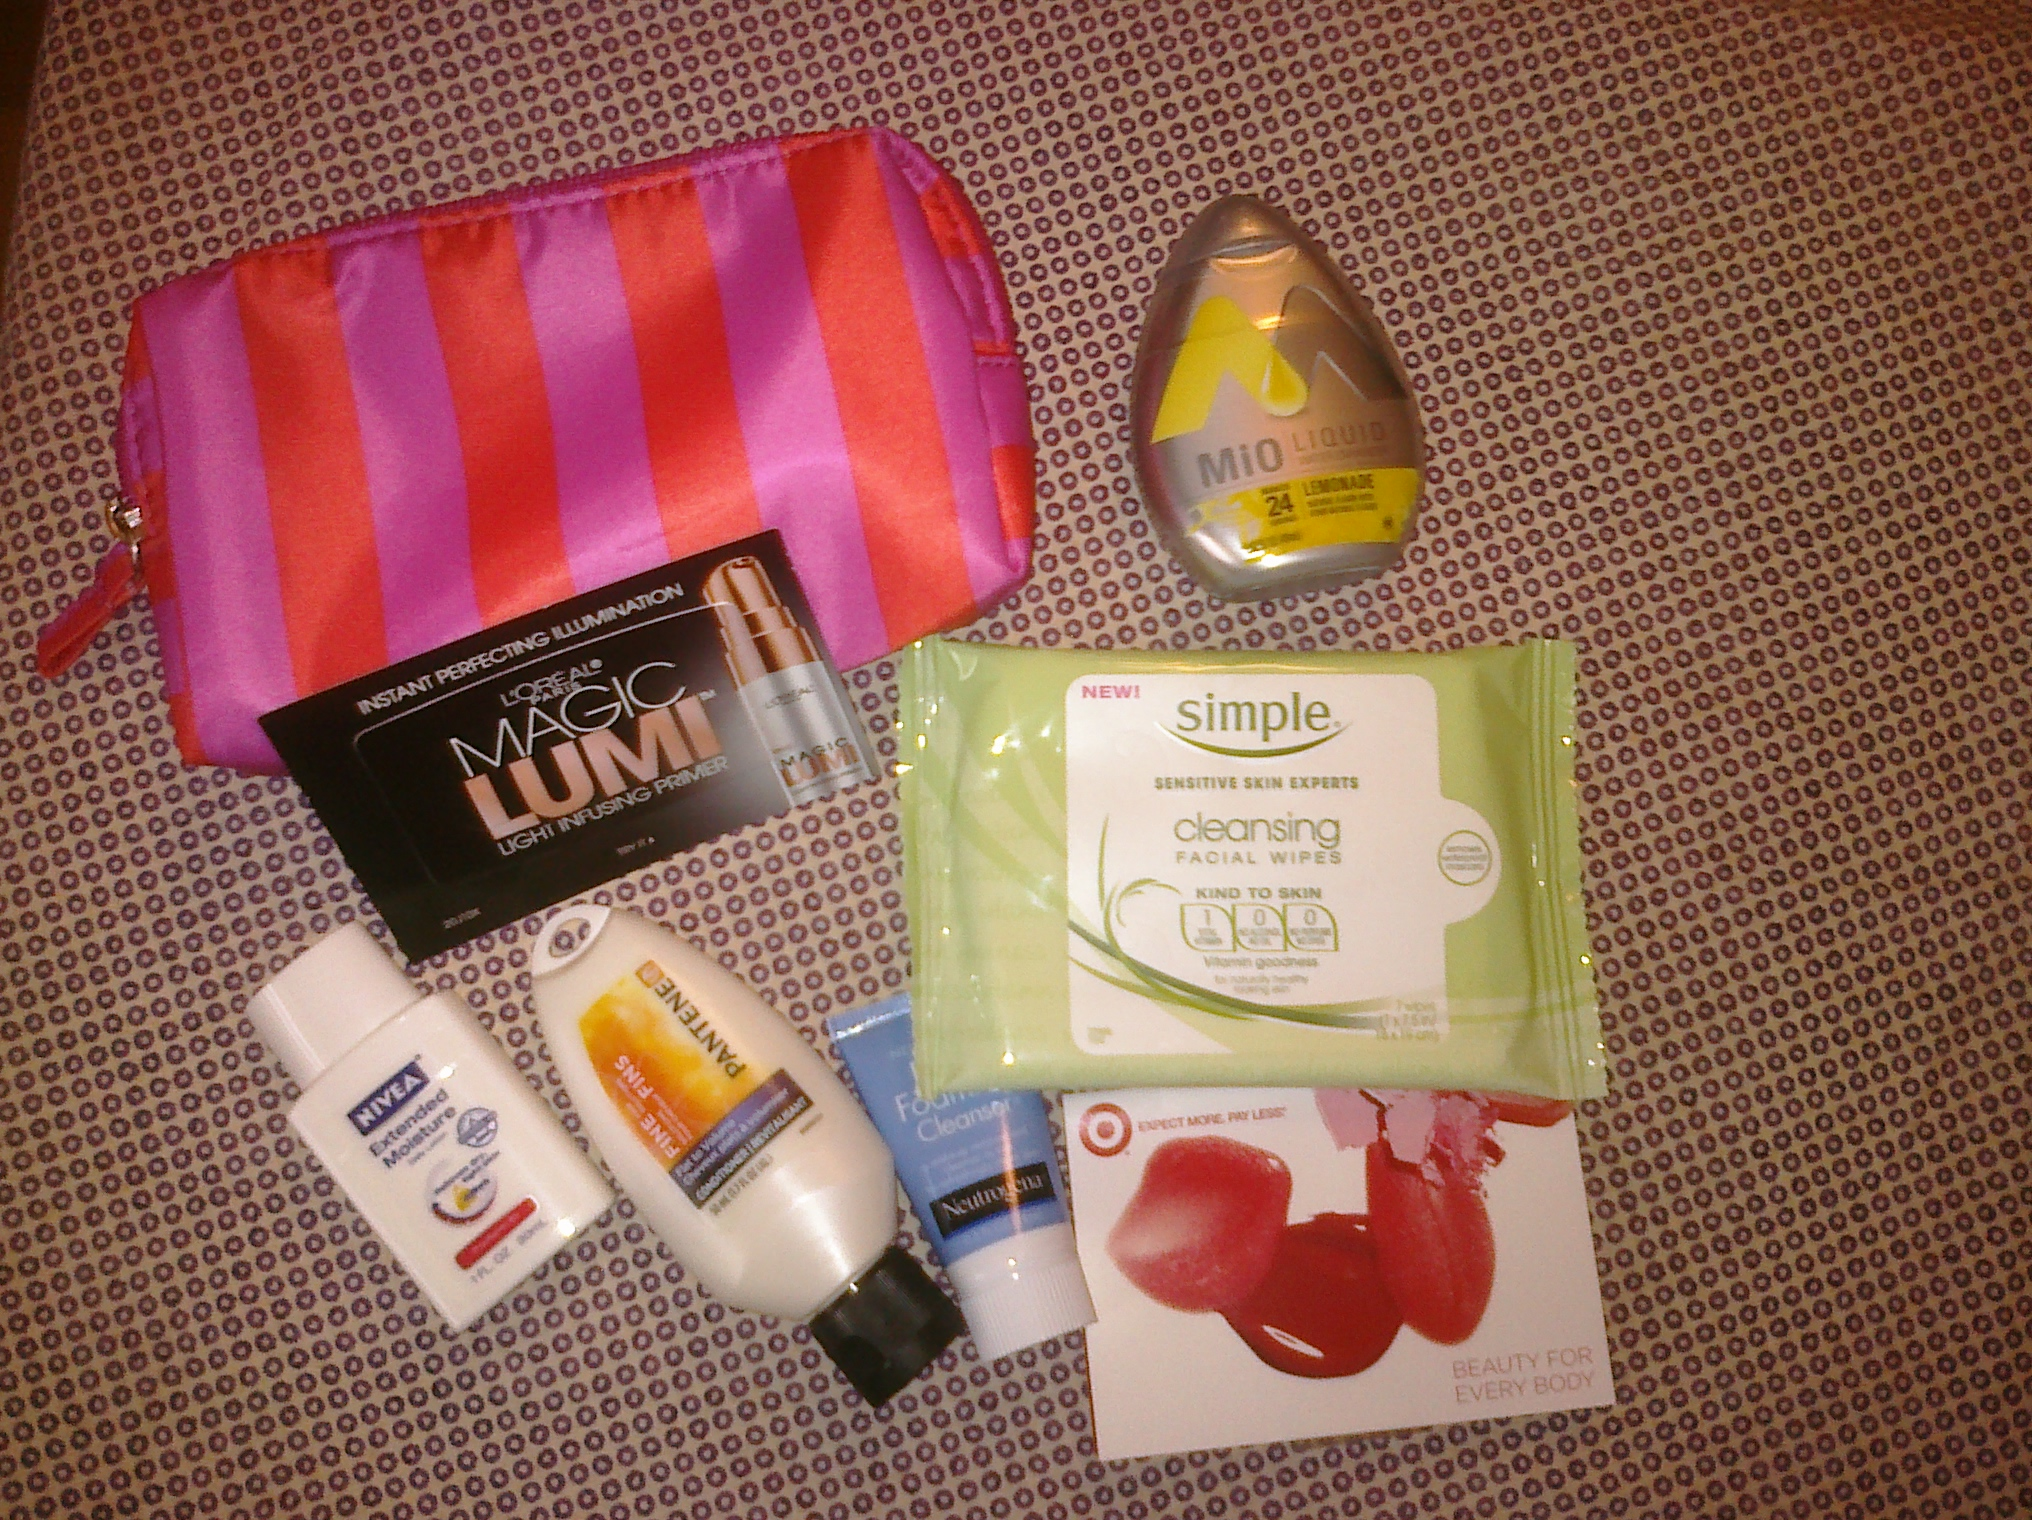 There Is Another Target Beauty Bag Give Away These Are Some Of The Best Free Samples Ever Picture Above Last Minus